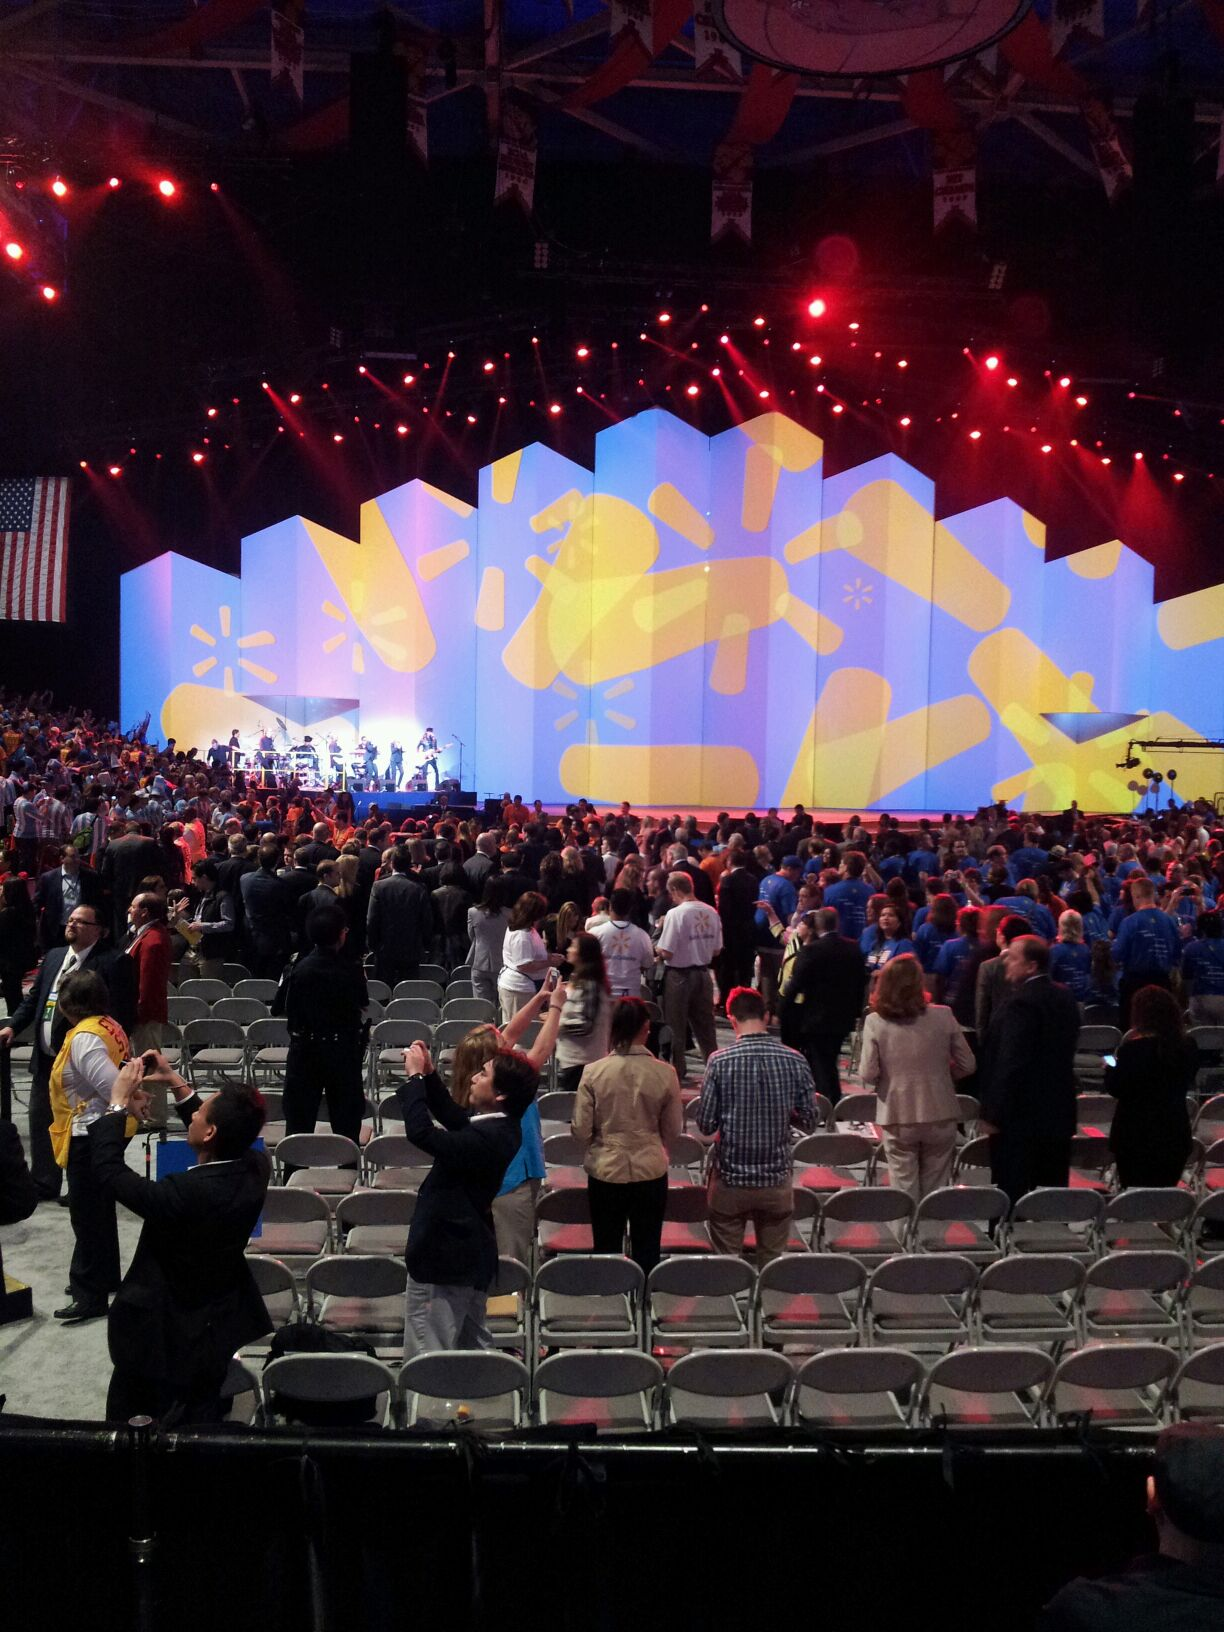 walmart shareholders meeting online Shareholder proposals on proxy access and an independent board chairman were defeated at wal-mart's annual meeting, despite support.